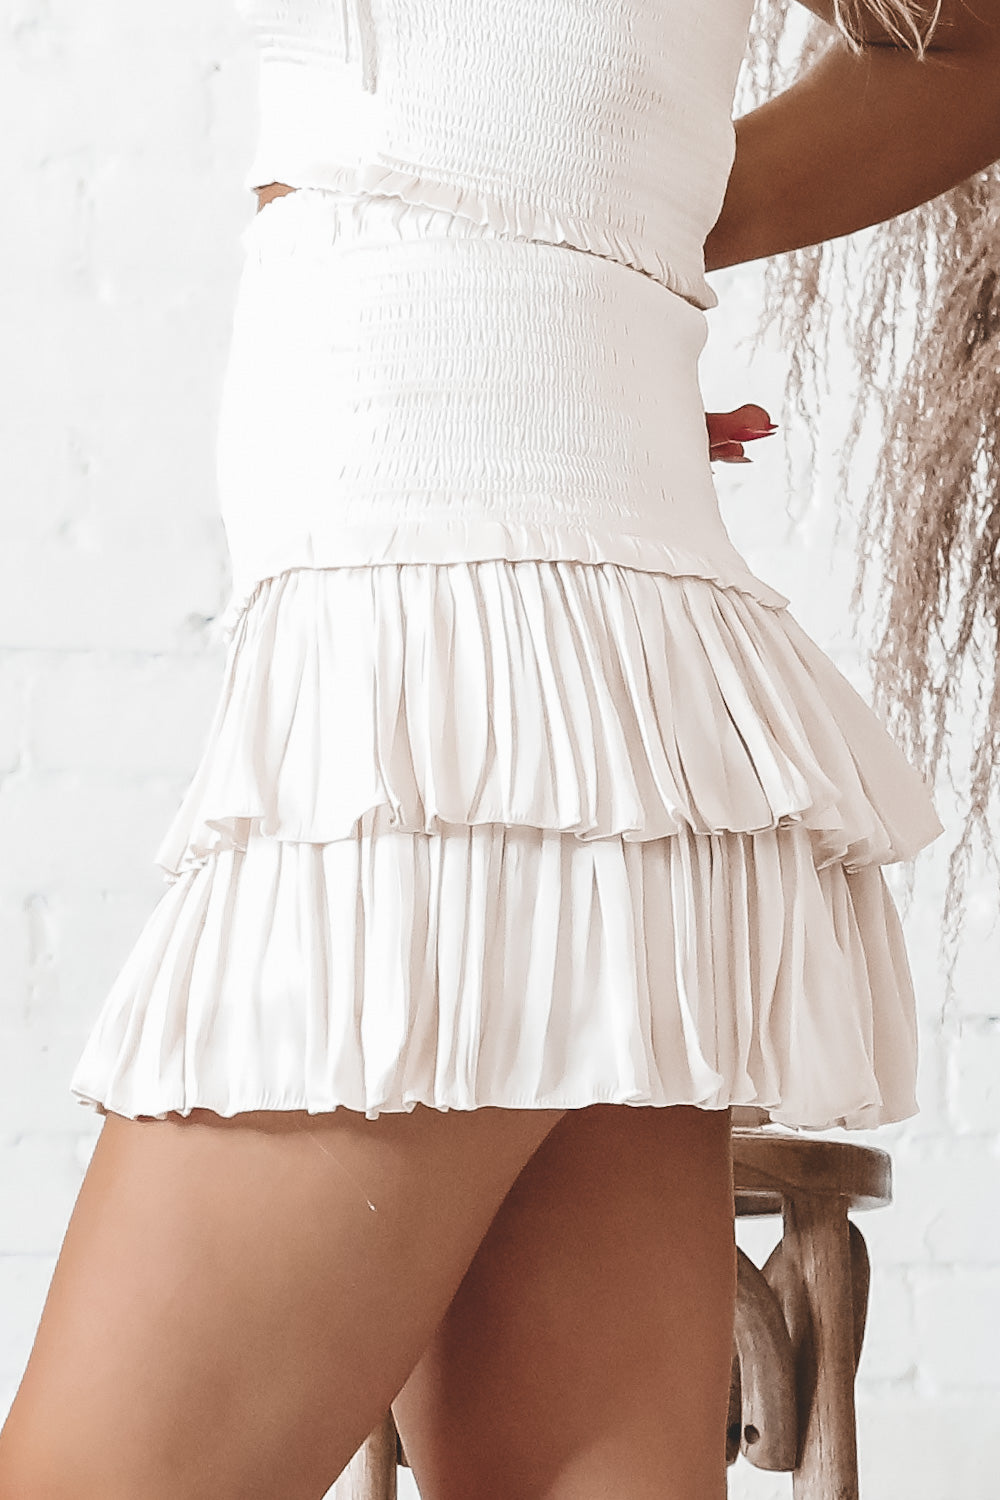 Way You Move Cream Silky Smocked Skirt